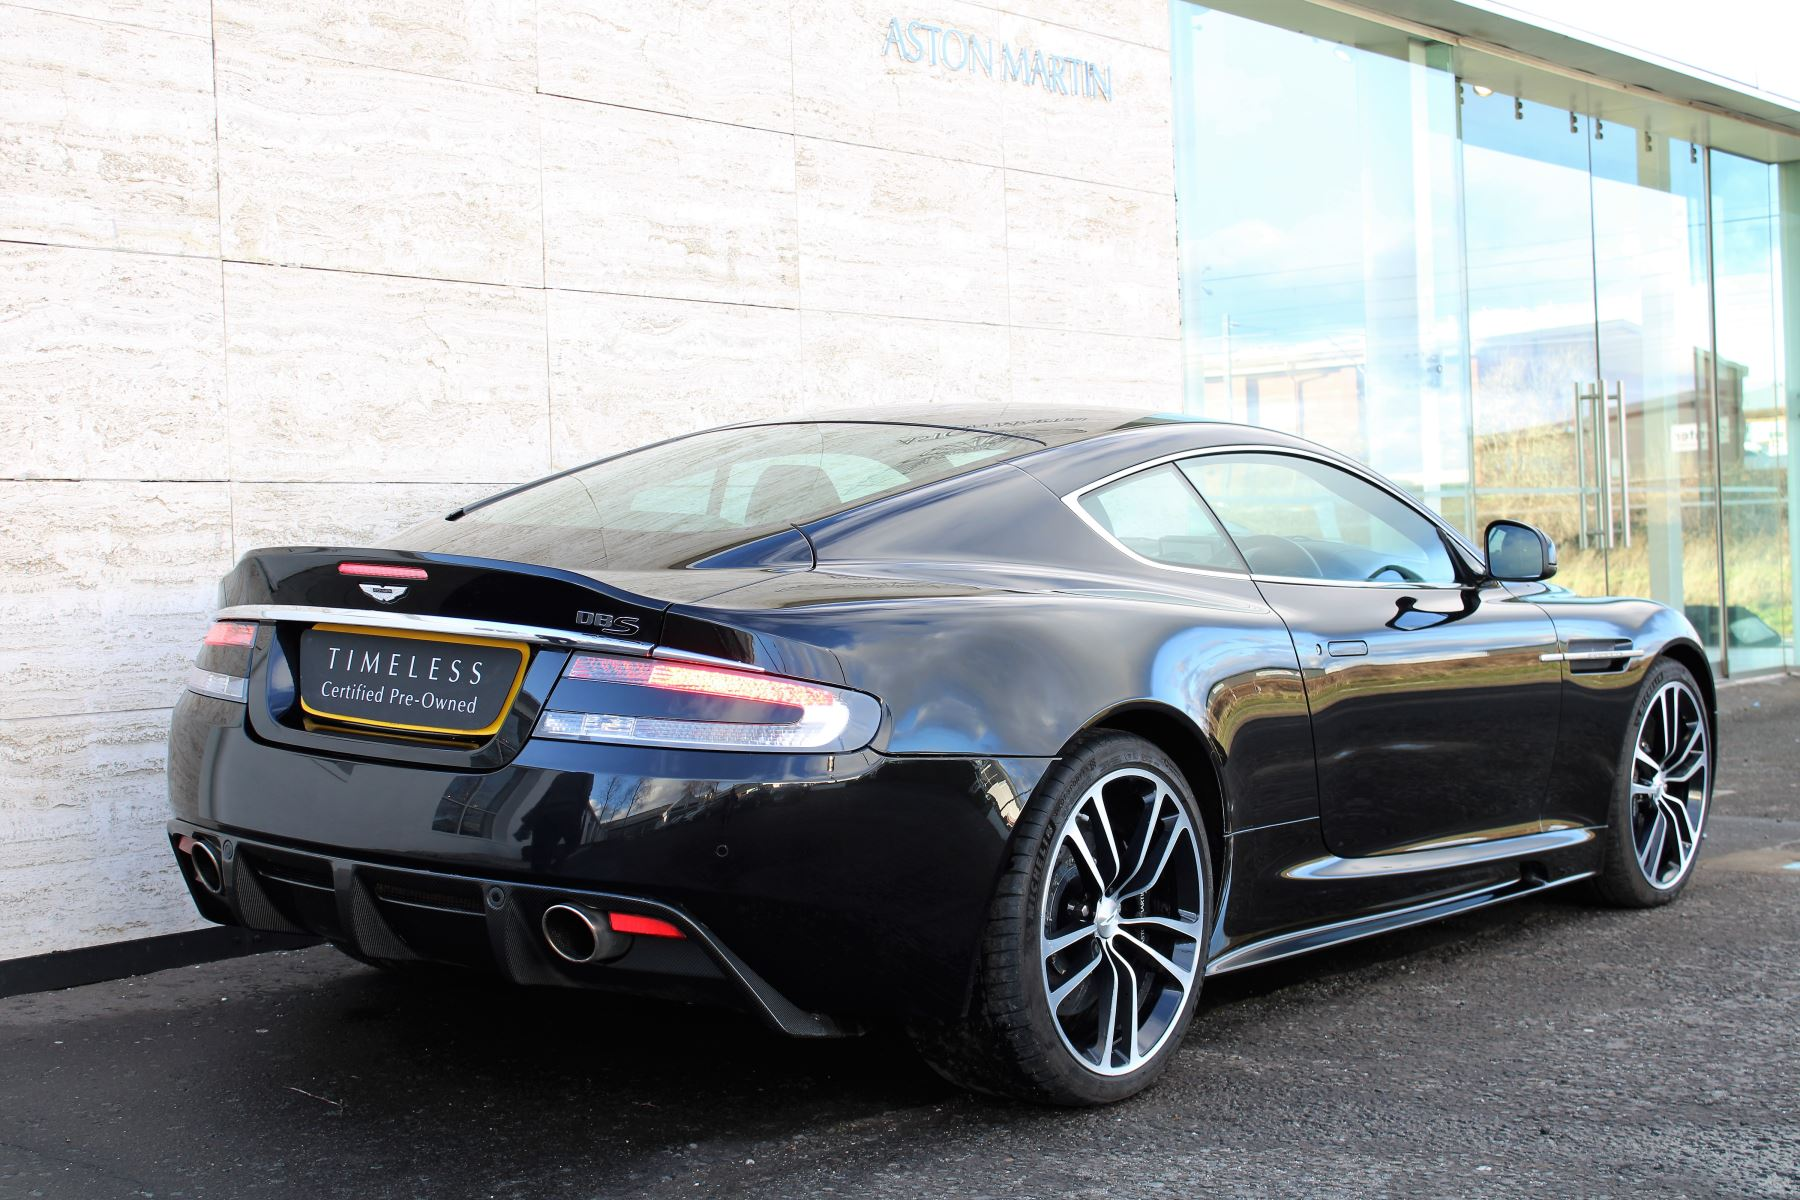 Aston Martin DBS V12 CARBON EDITION 2dr Touchtronic image 7